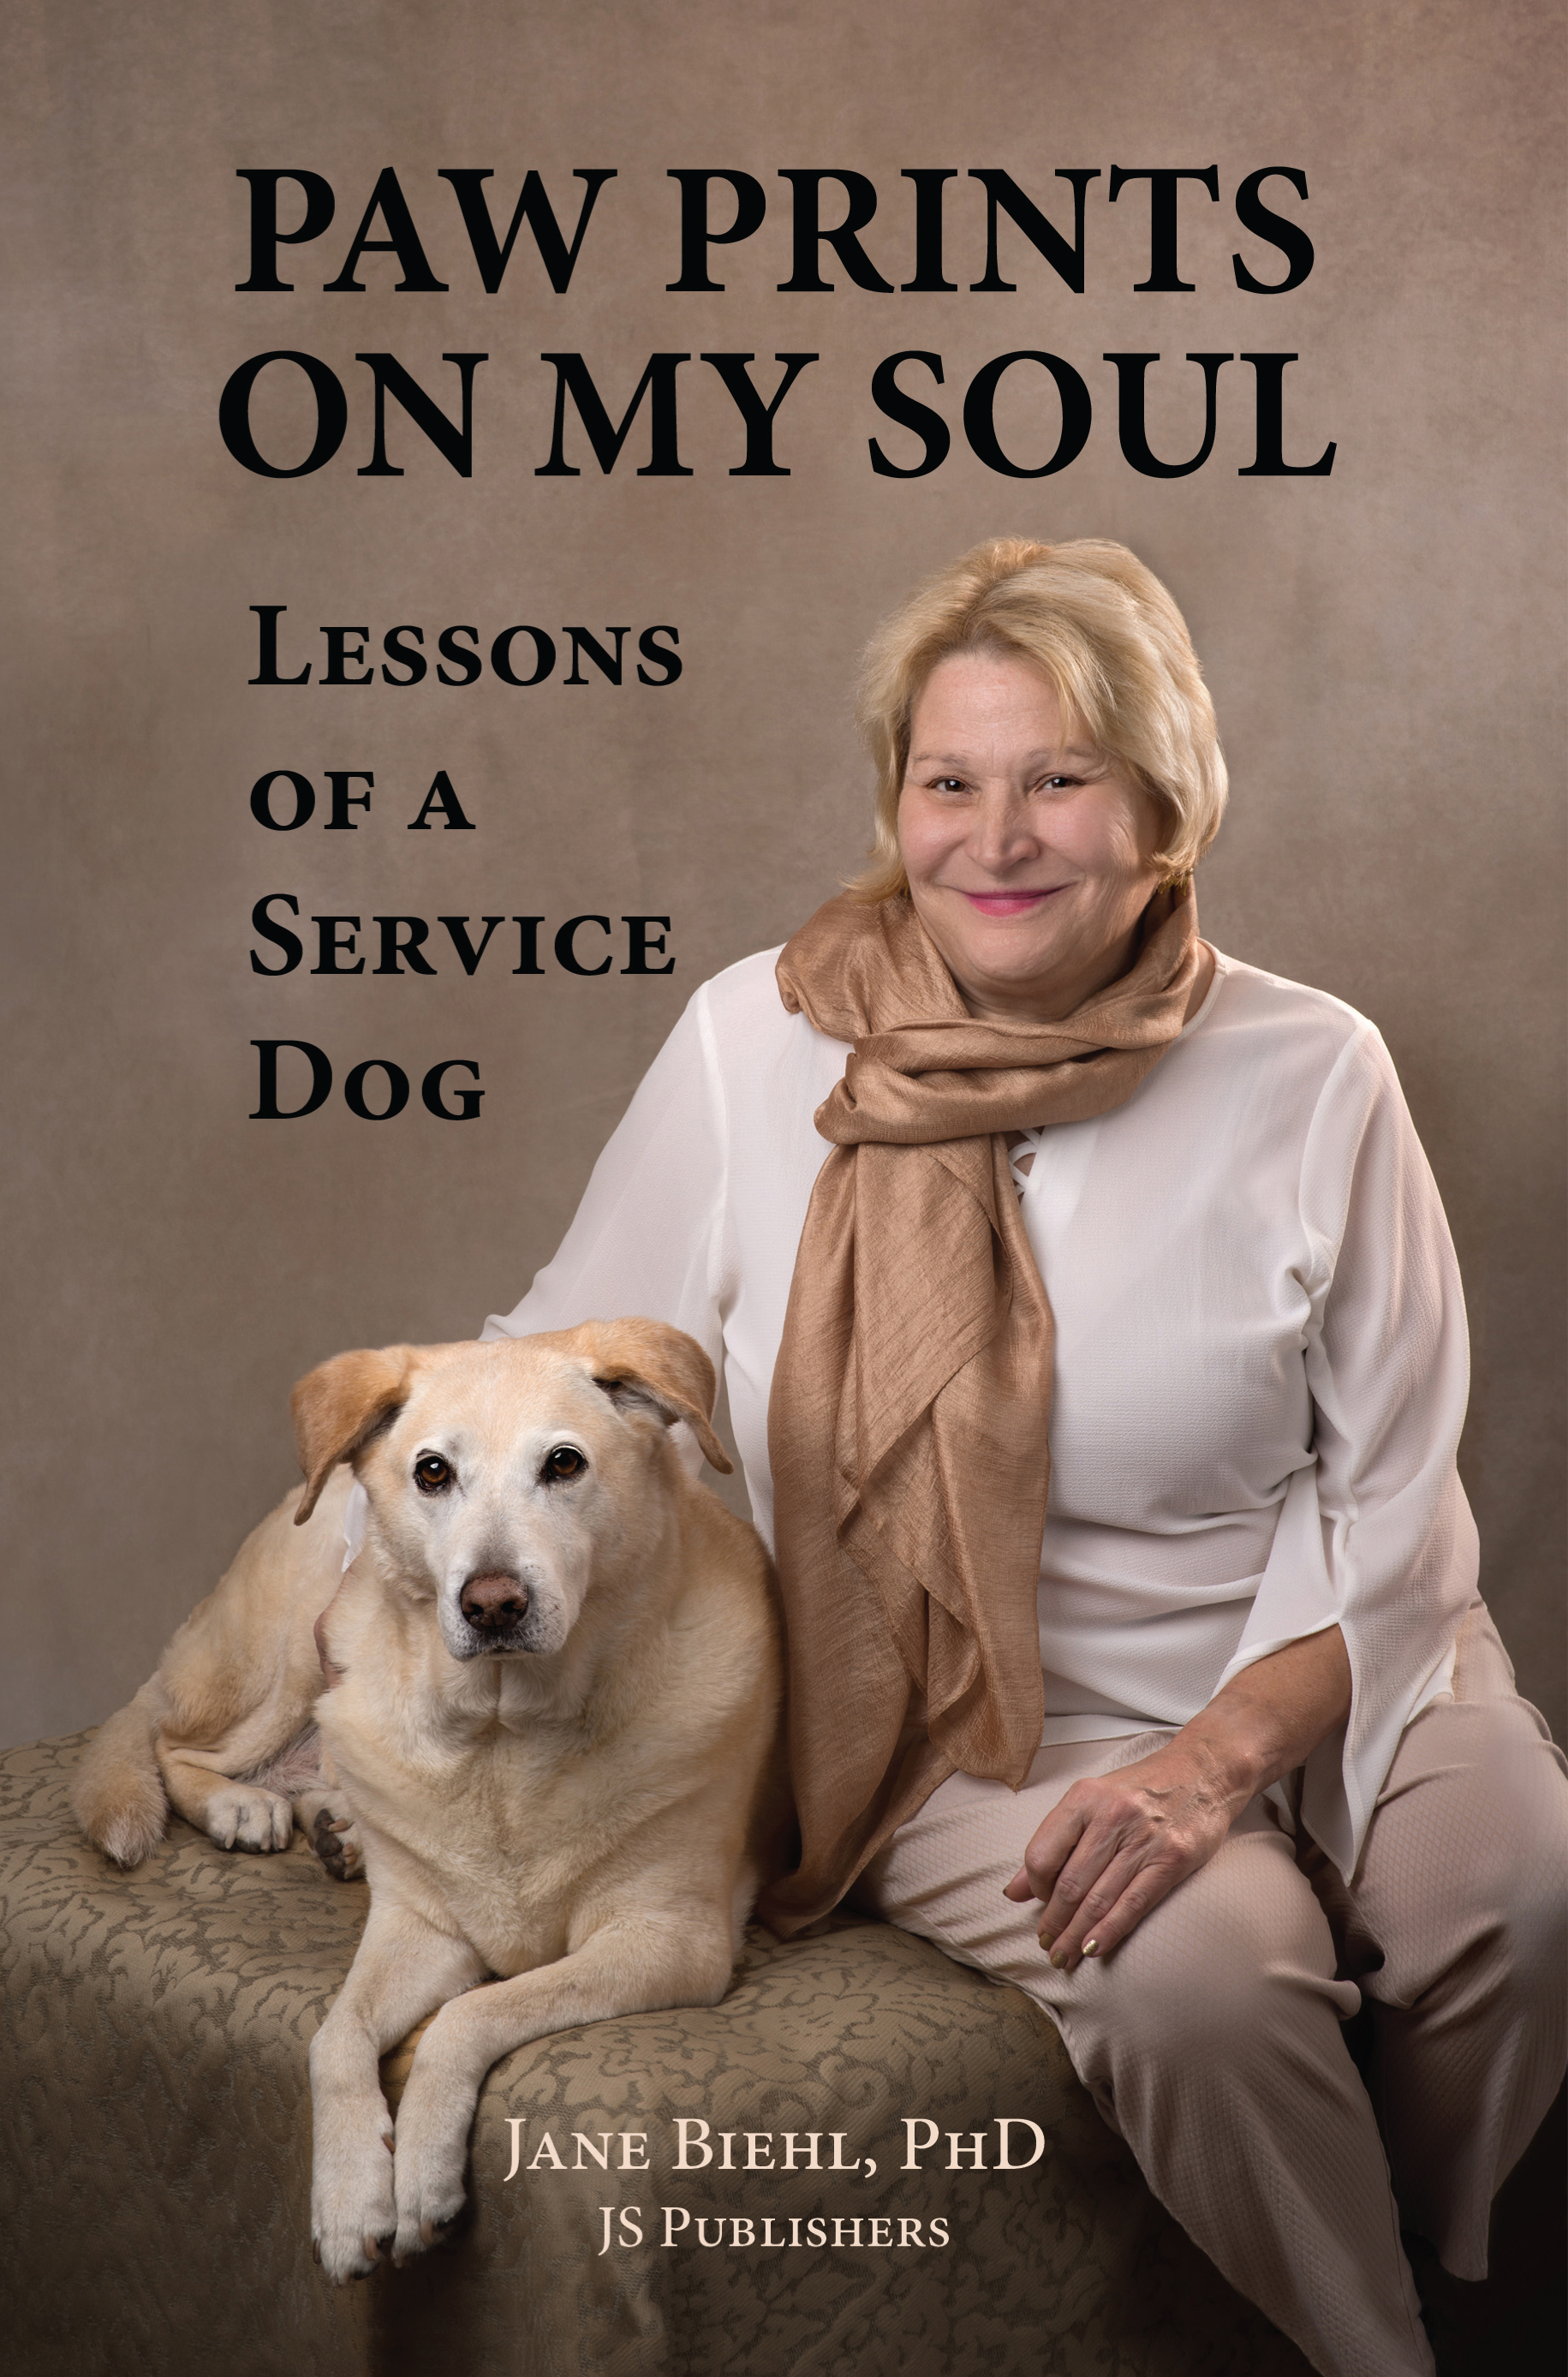 The author's second book is title  Pawprints on my soul:Lessons of a service dog.  This is a devotional about her hearing ear dog, Sita - their journey together and the valuable lessons Sita has taught her.